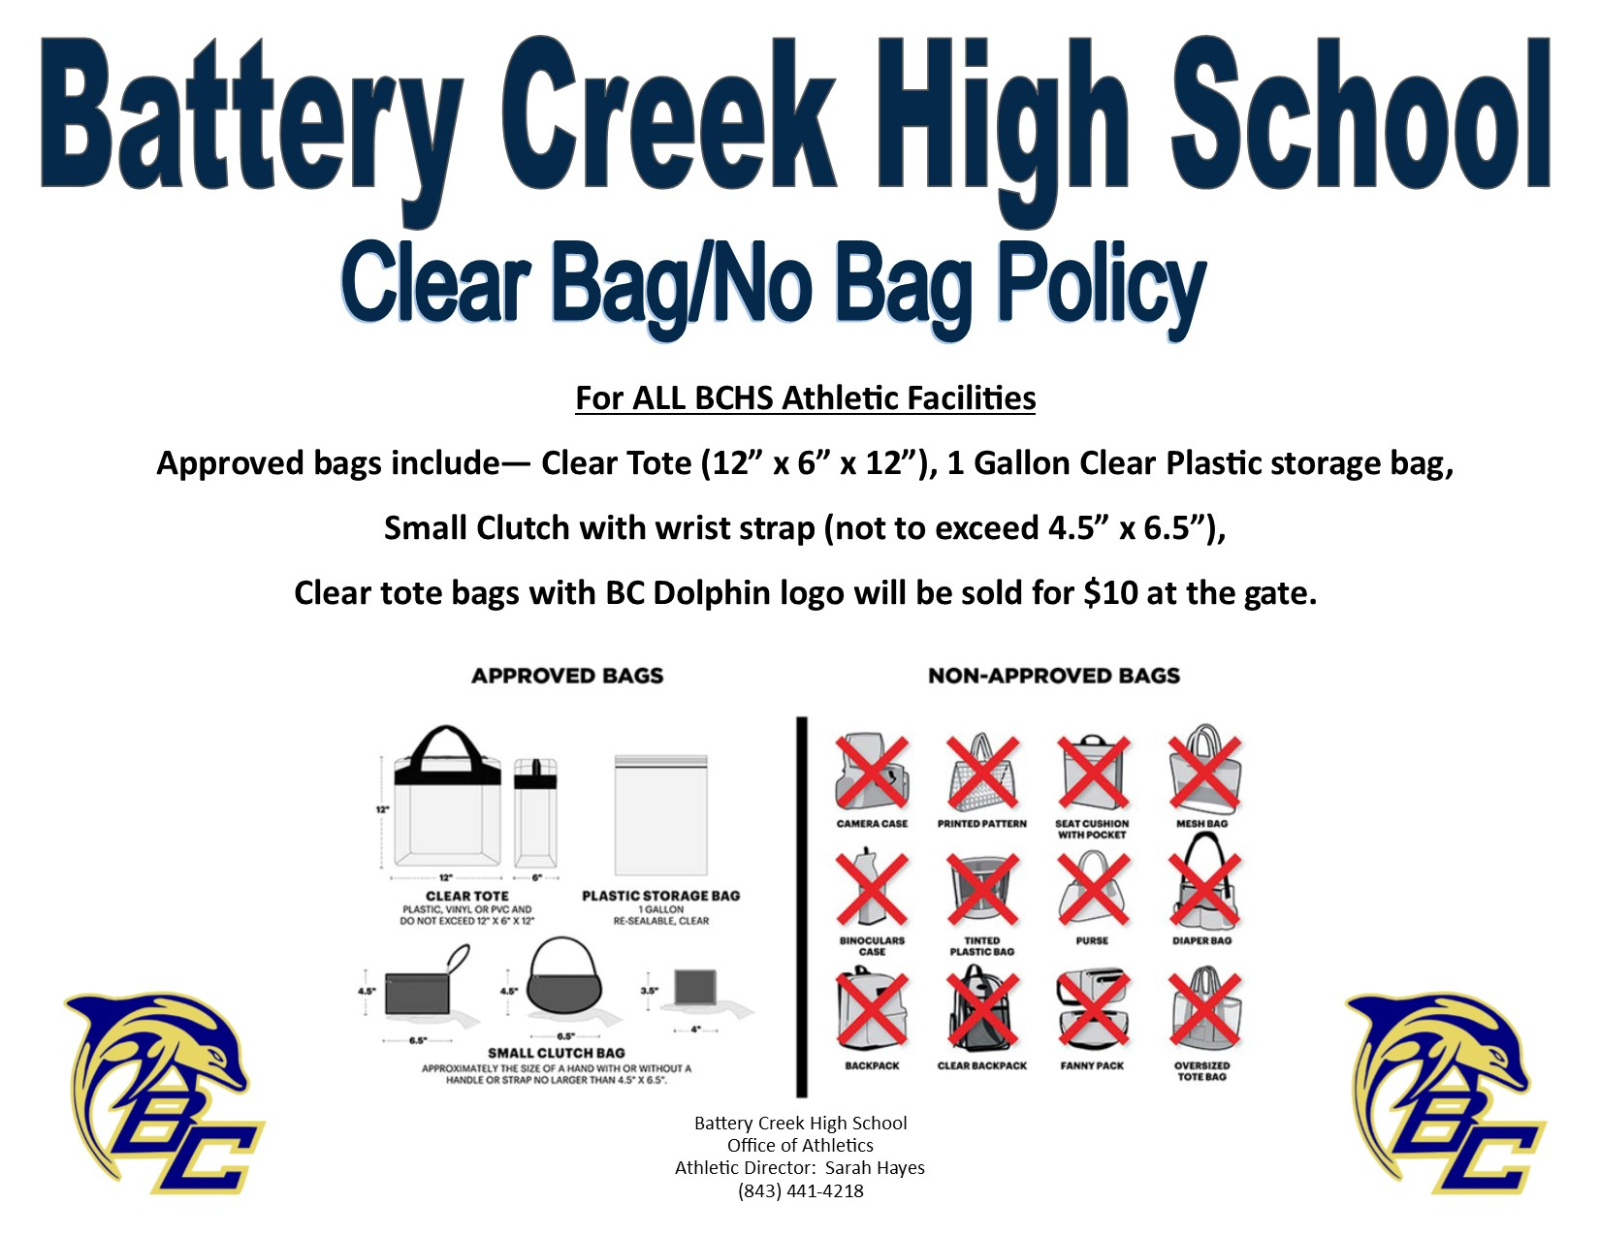 Clear Bag/No Bag Policy